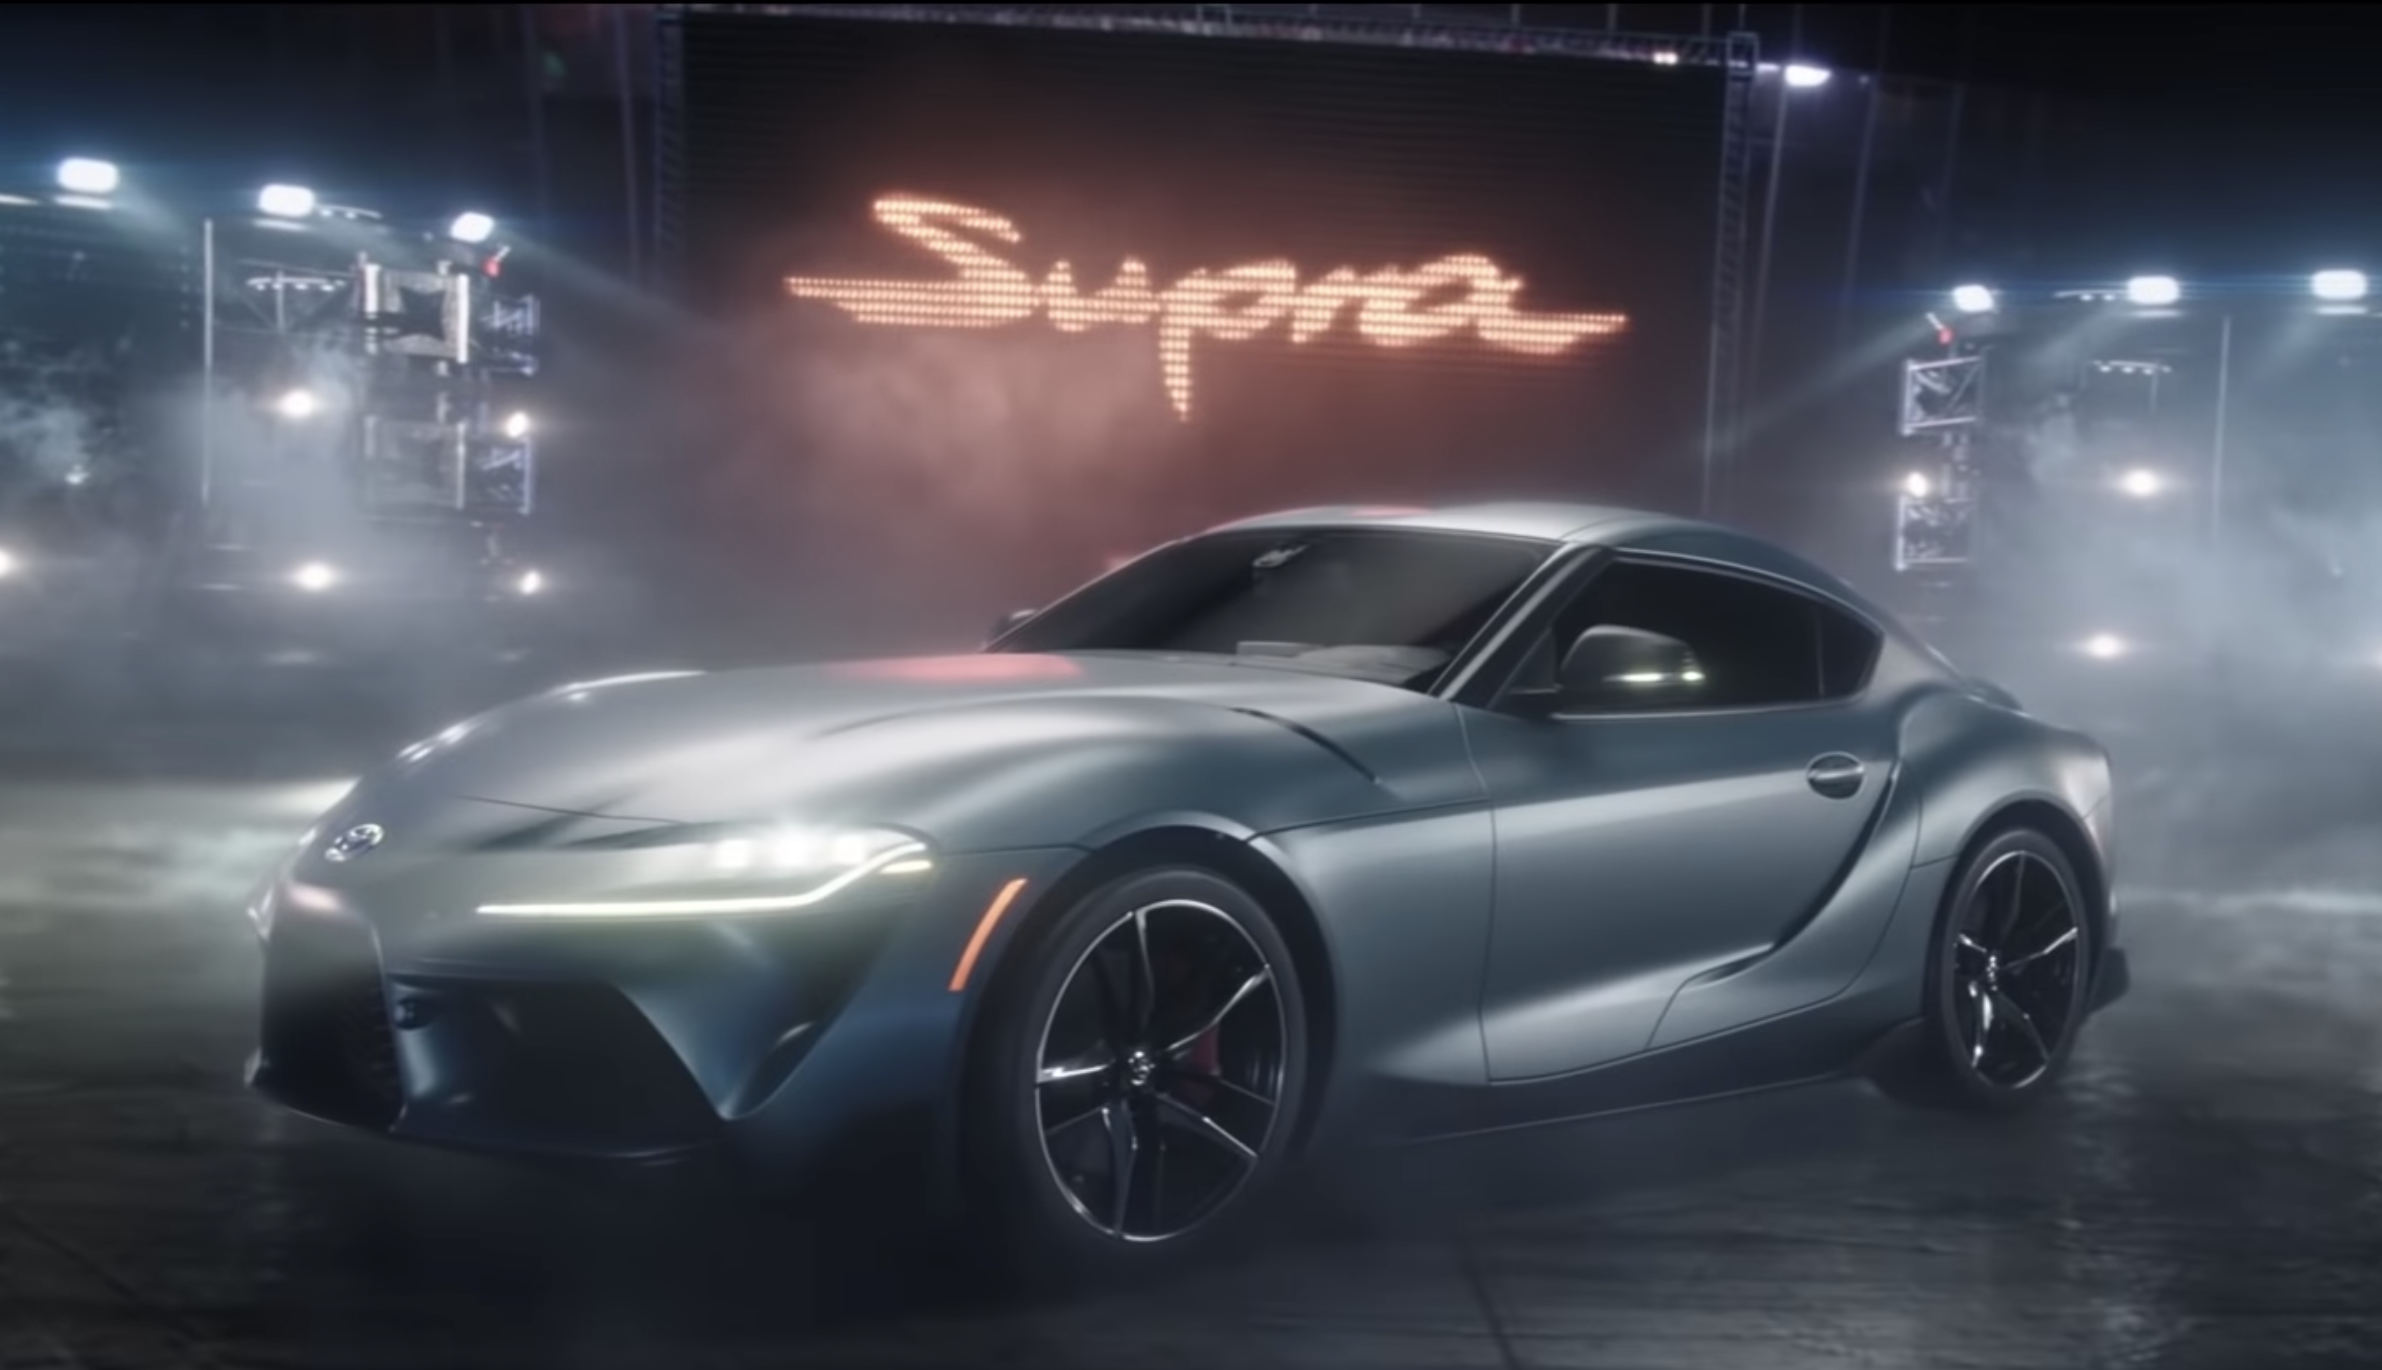 Best 2020 Super Bowl Commercials 2020 Toyota Supra Super Bowl Ad   Best Twitter Reactions